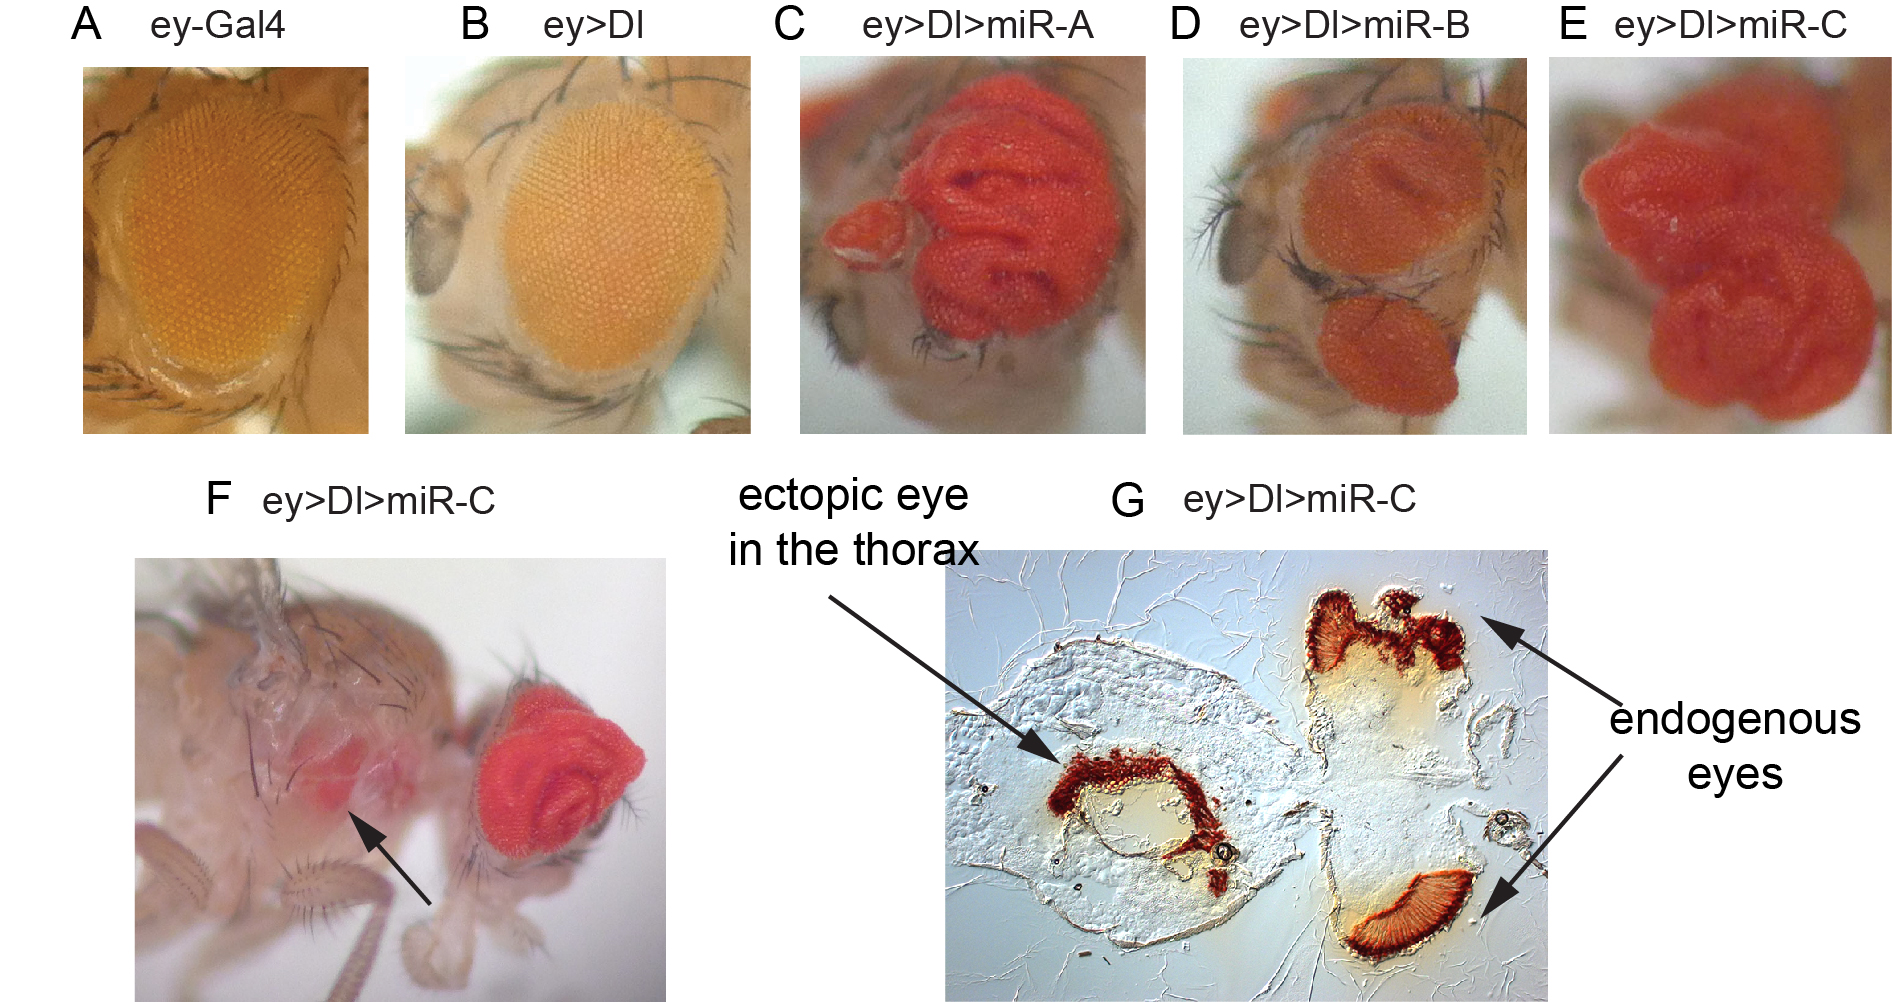 Figure 3. In vivo miRNA misexpression genetic screen. (A-E) Adult eyes that contain driver alone (A), express the Notch ligand Dl (B), or that coexpress Dl with different miRNAs that result in vast expansion of eye tissue (C-E). (F) Example of Dl-miRNA synergisms that yields migration of eye tissue to a distant location. (G) Sectioning confirm the presence of an ectopic eye in the thorax.